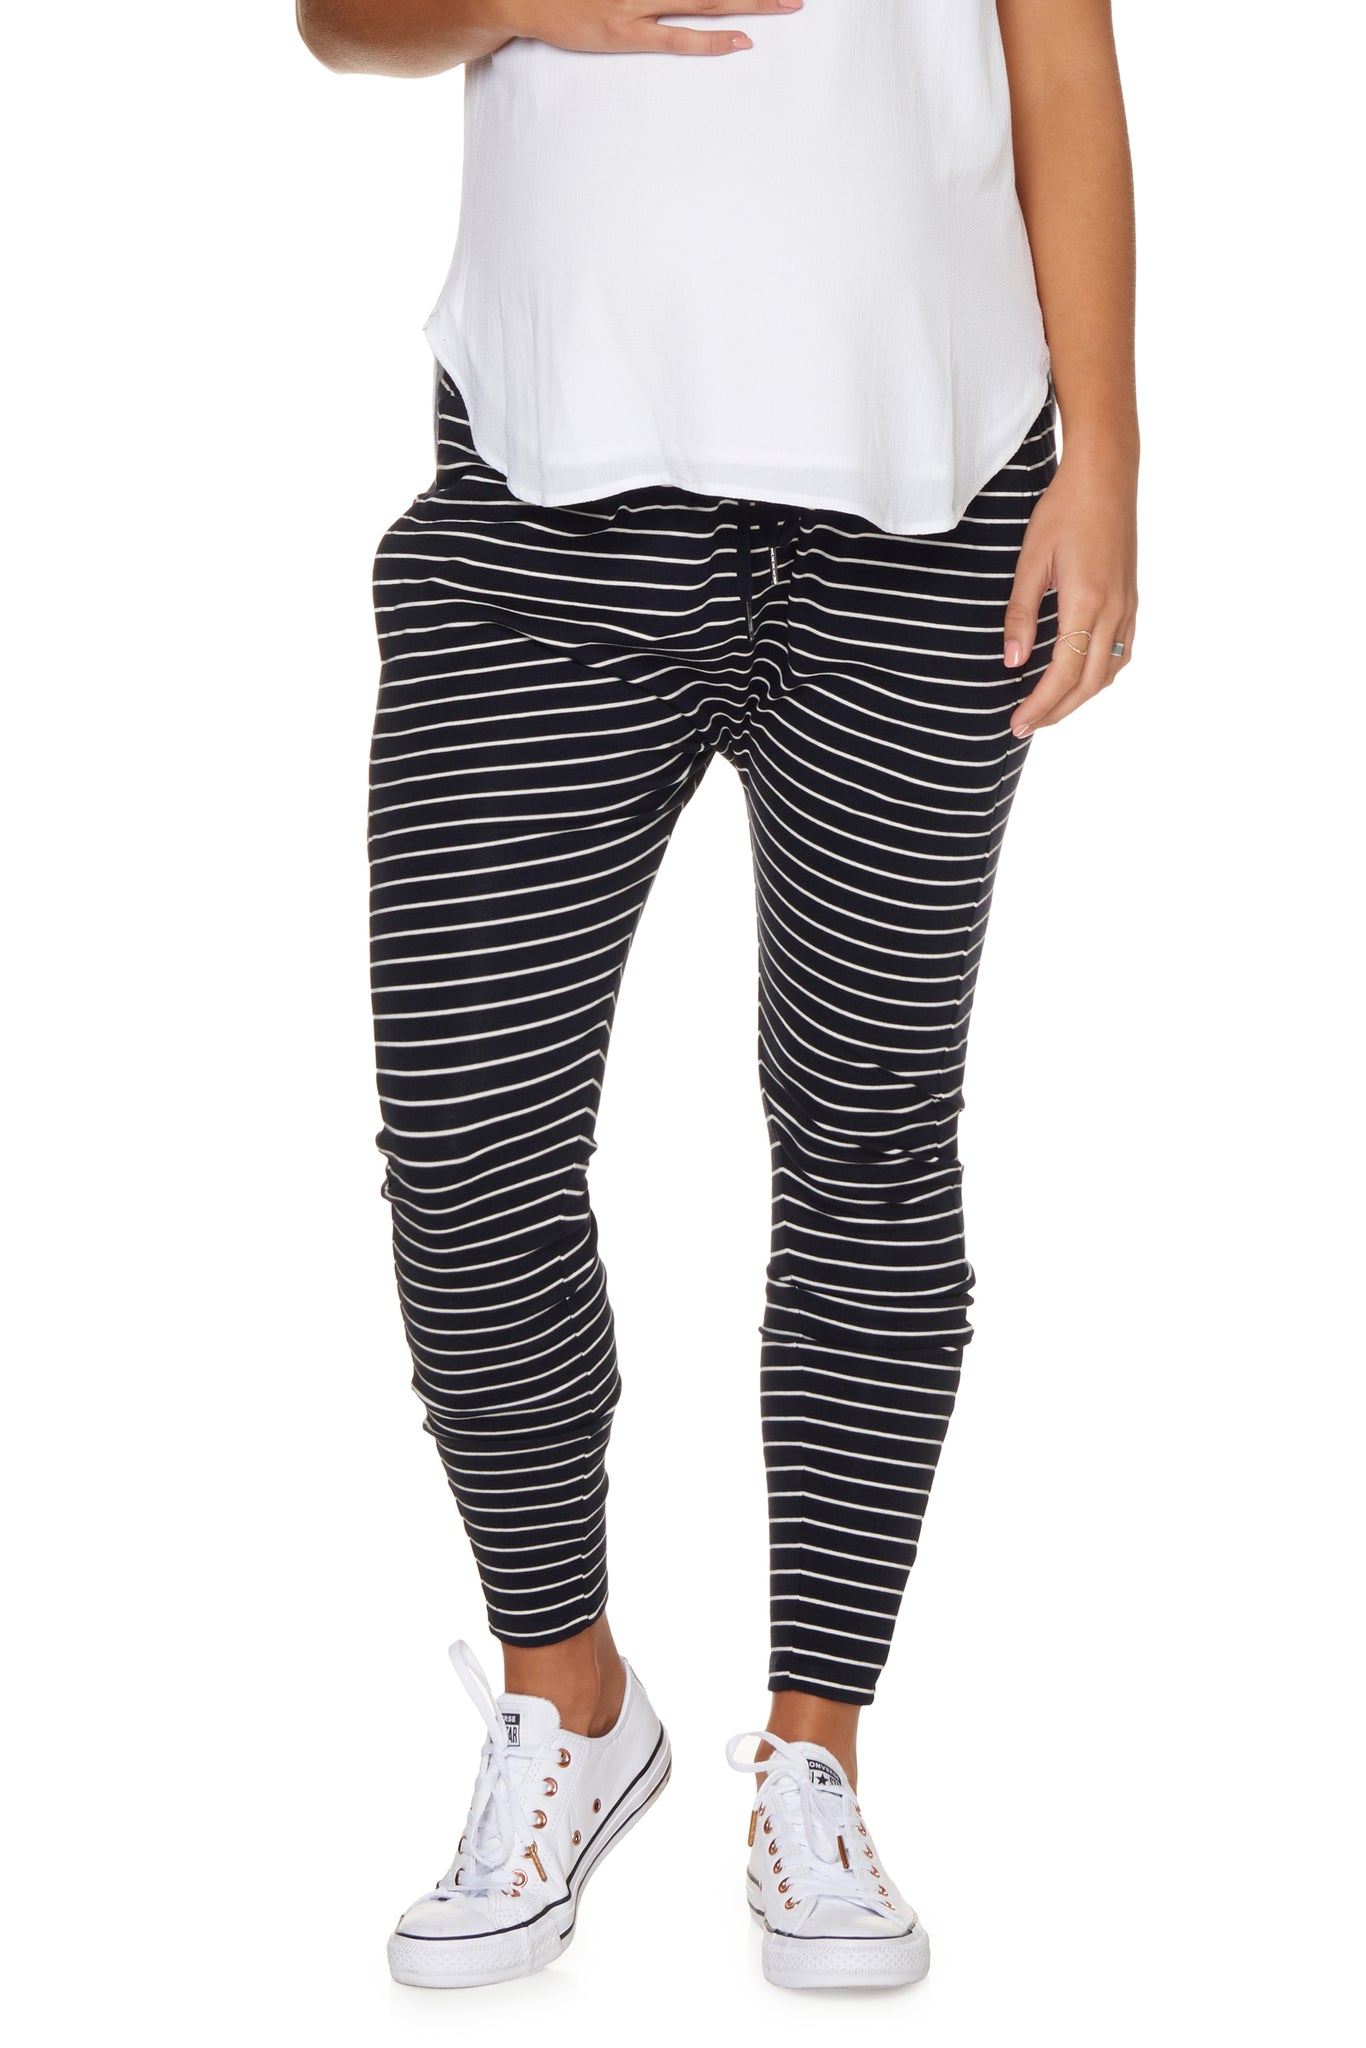 Navy Stripe Maternity Track Pants 1